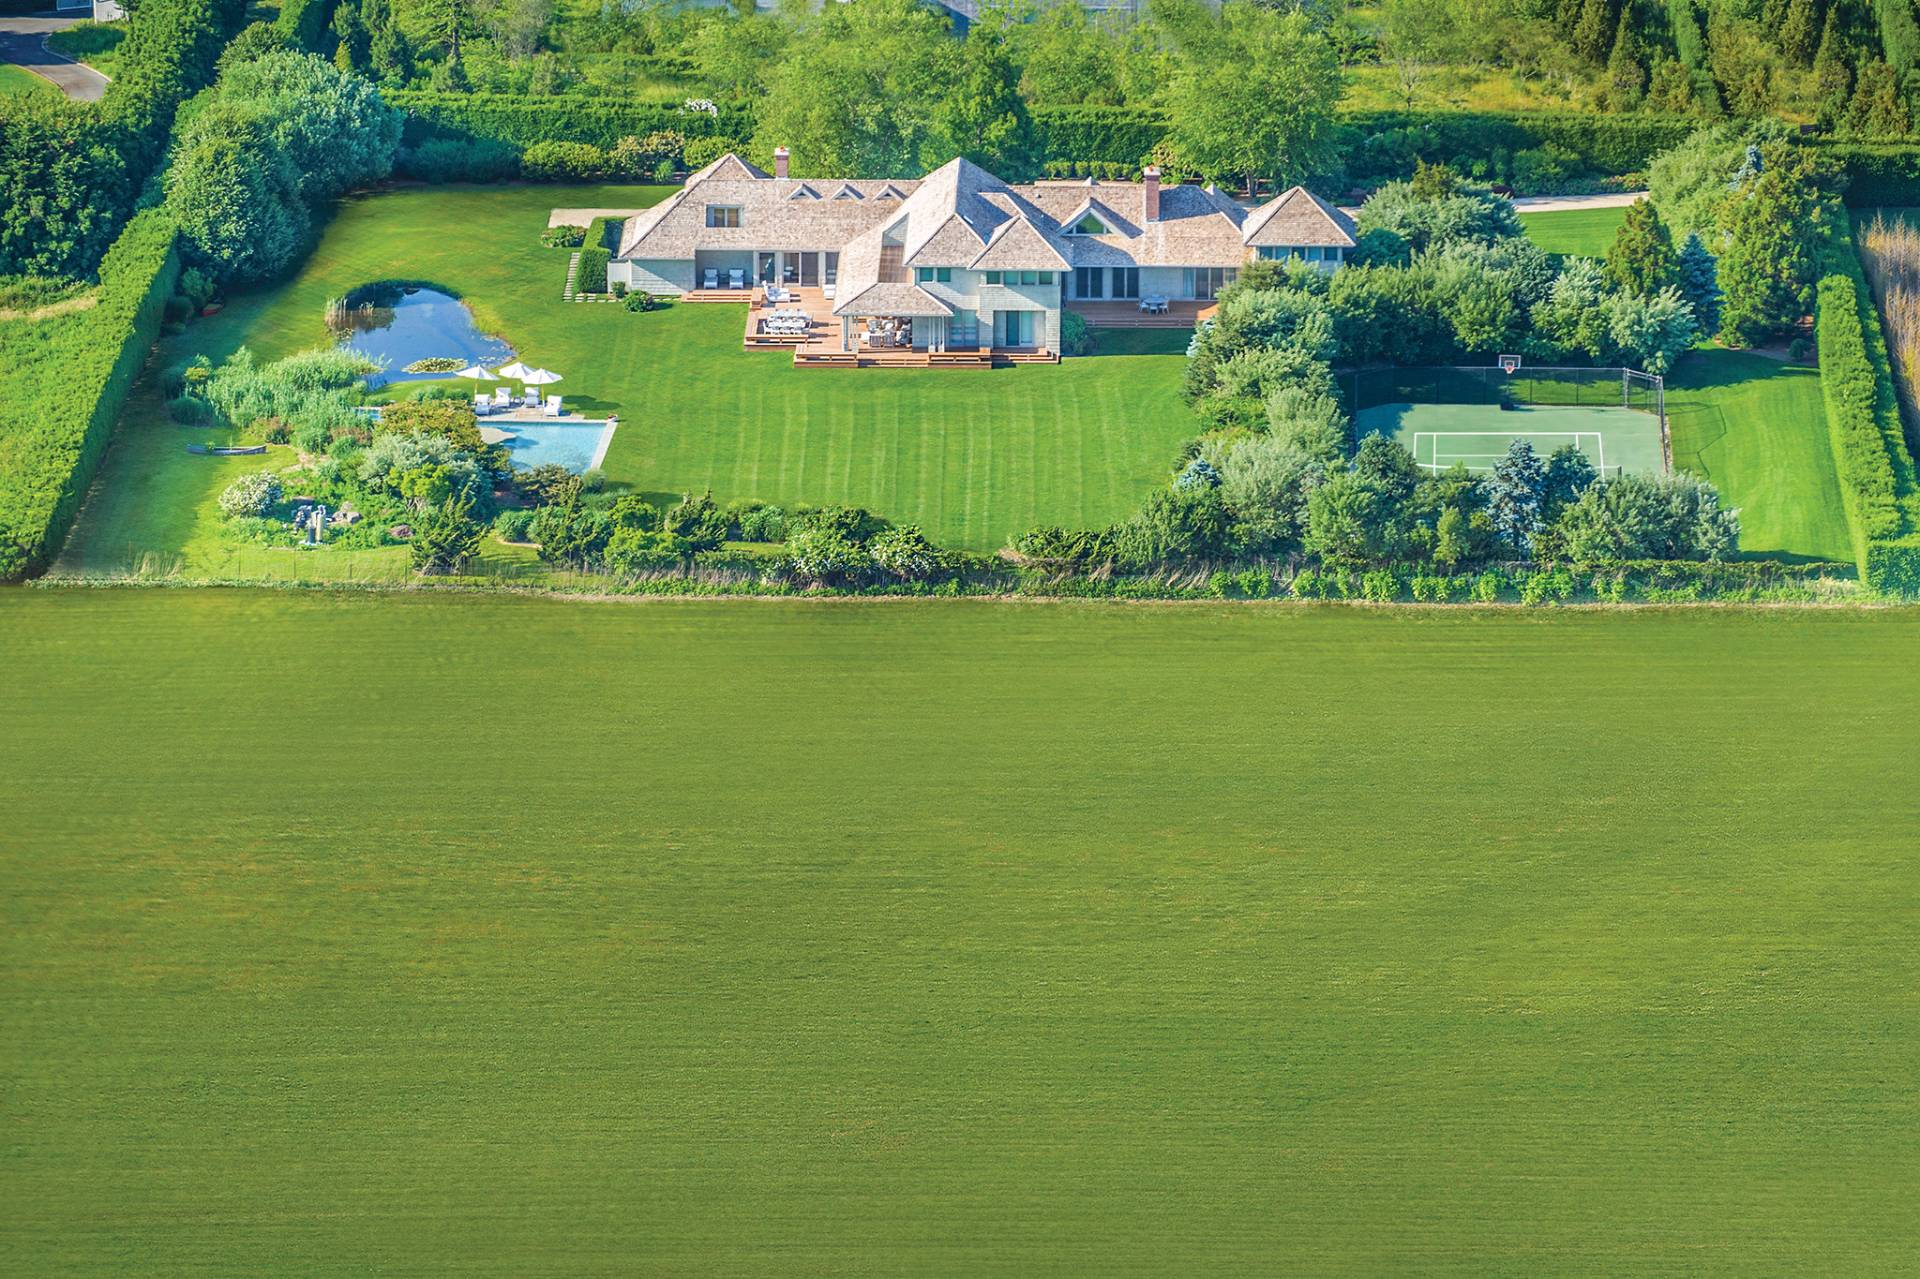 Casa Unifamiliar por un Venta en Superlative Sagaponack South Estate 836 Sagg Main Street, Sagaponack, Nueva York